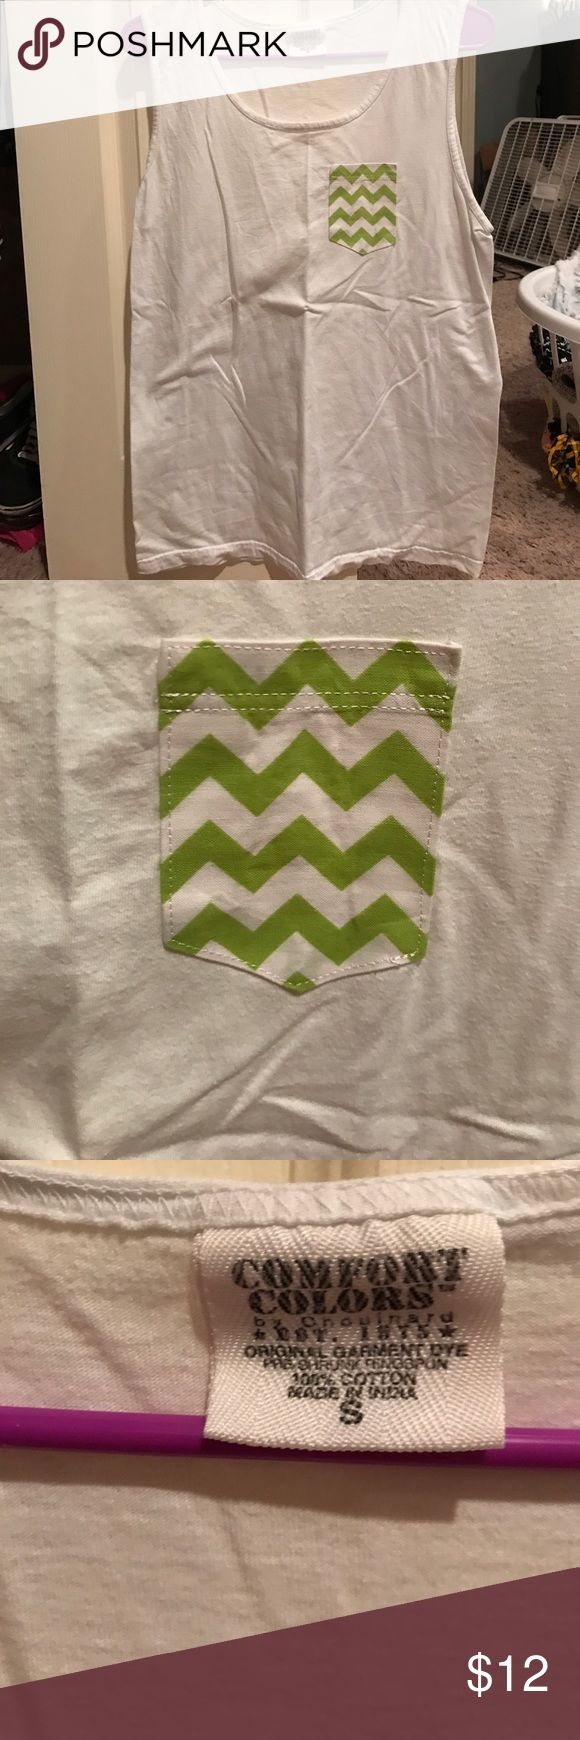 Comfort colors tank top Comfort colors tank top with a green and white chevron pocket! Never worn gotten as a gift! In perfect condition! All clothes come from a smoke free home comfort colors Tops Tank Tops